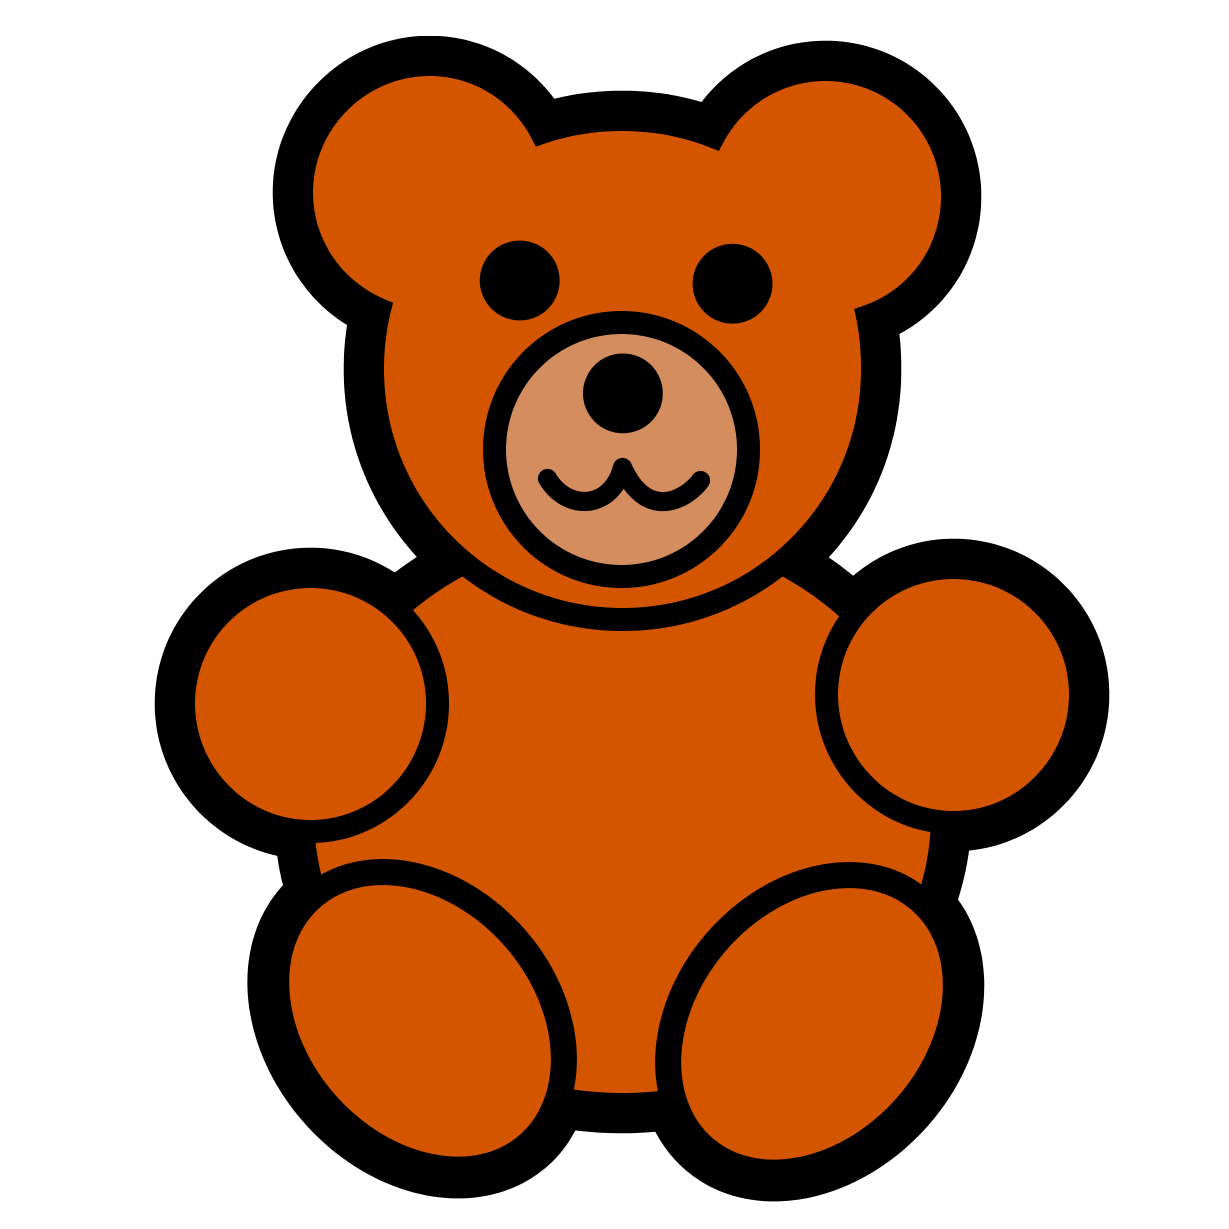 Clipart balloon bear. Teddy free images clipartix